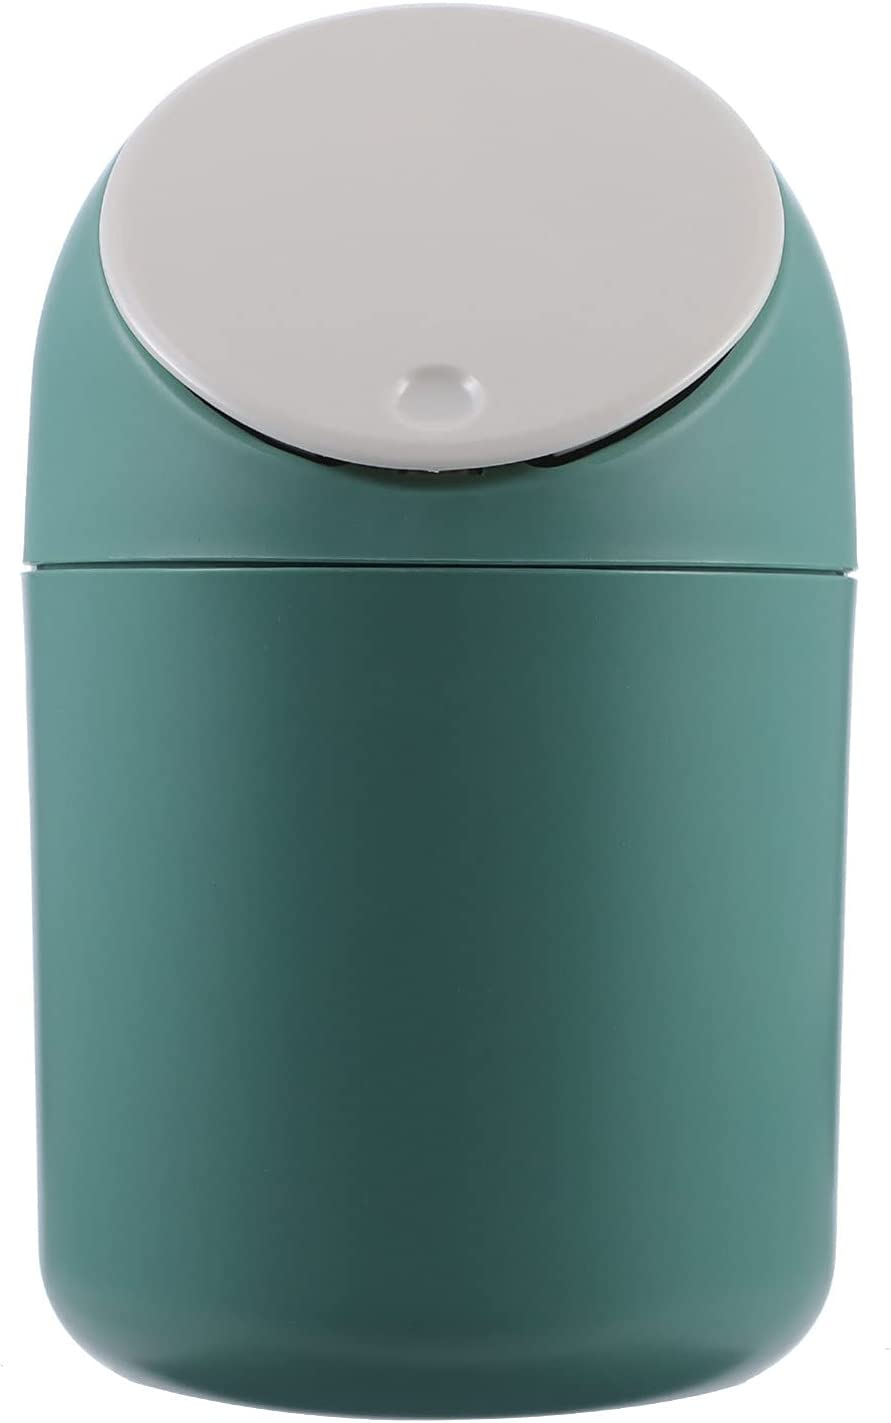 WINOMO Mini Large discharge OFFicial sale Desktop Trash Can Tiny Small with Wastebasket Table